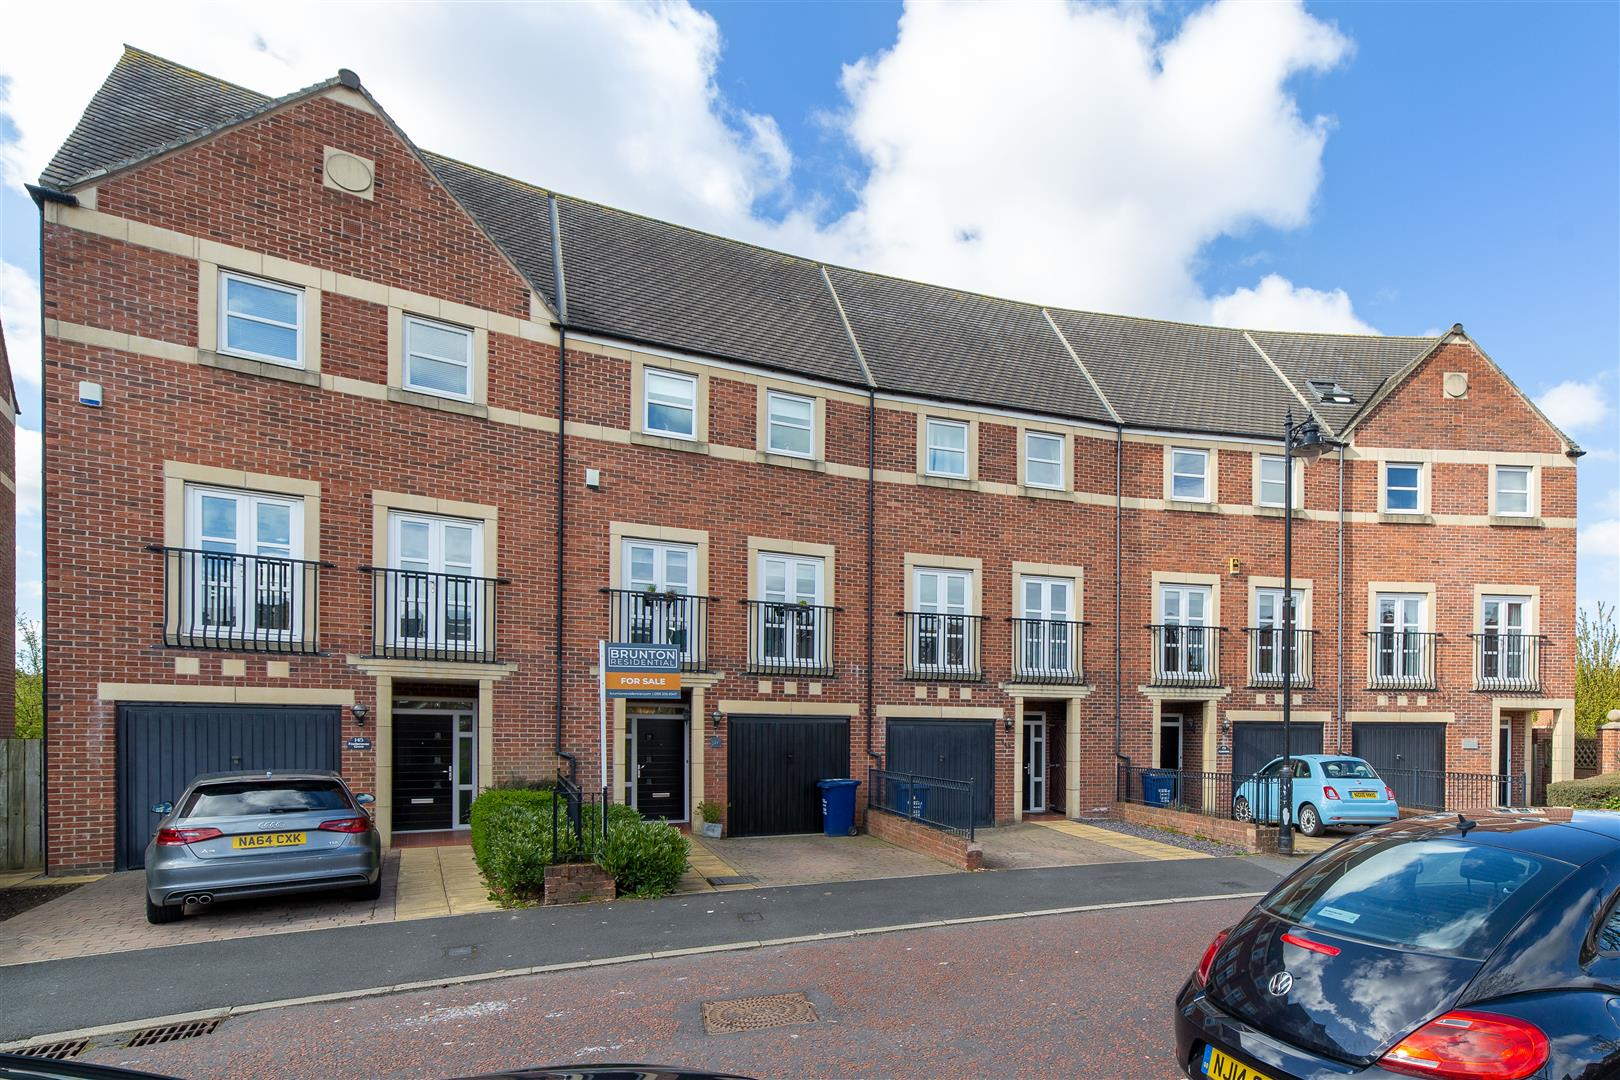 4 bed town house for sale in Featherstone Grove, Great Park, NE3